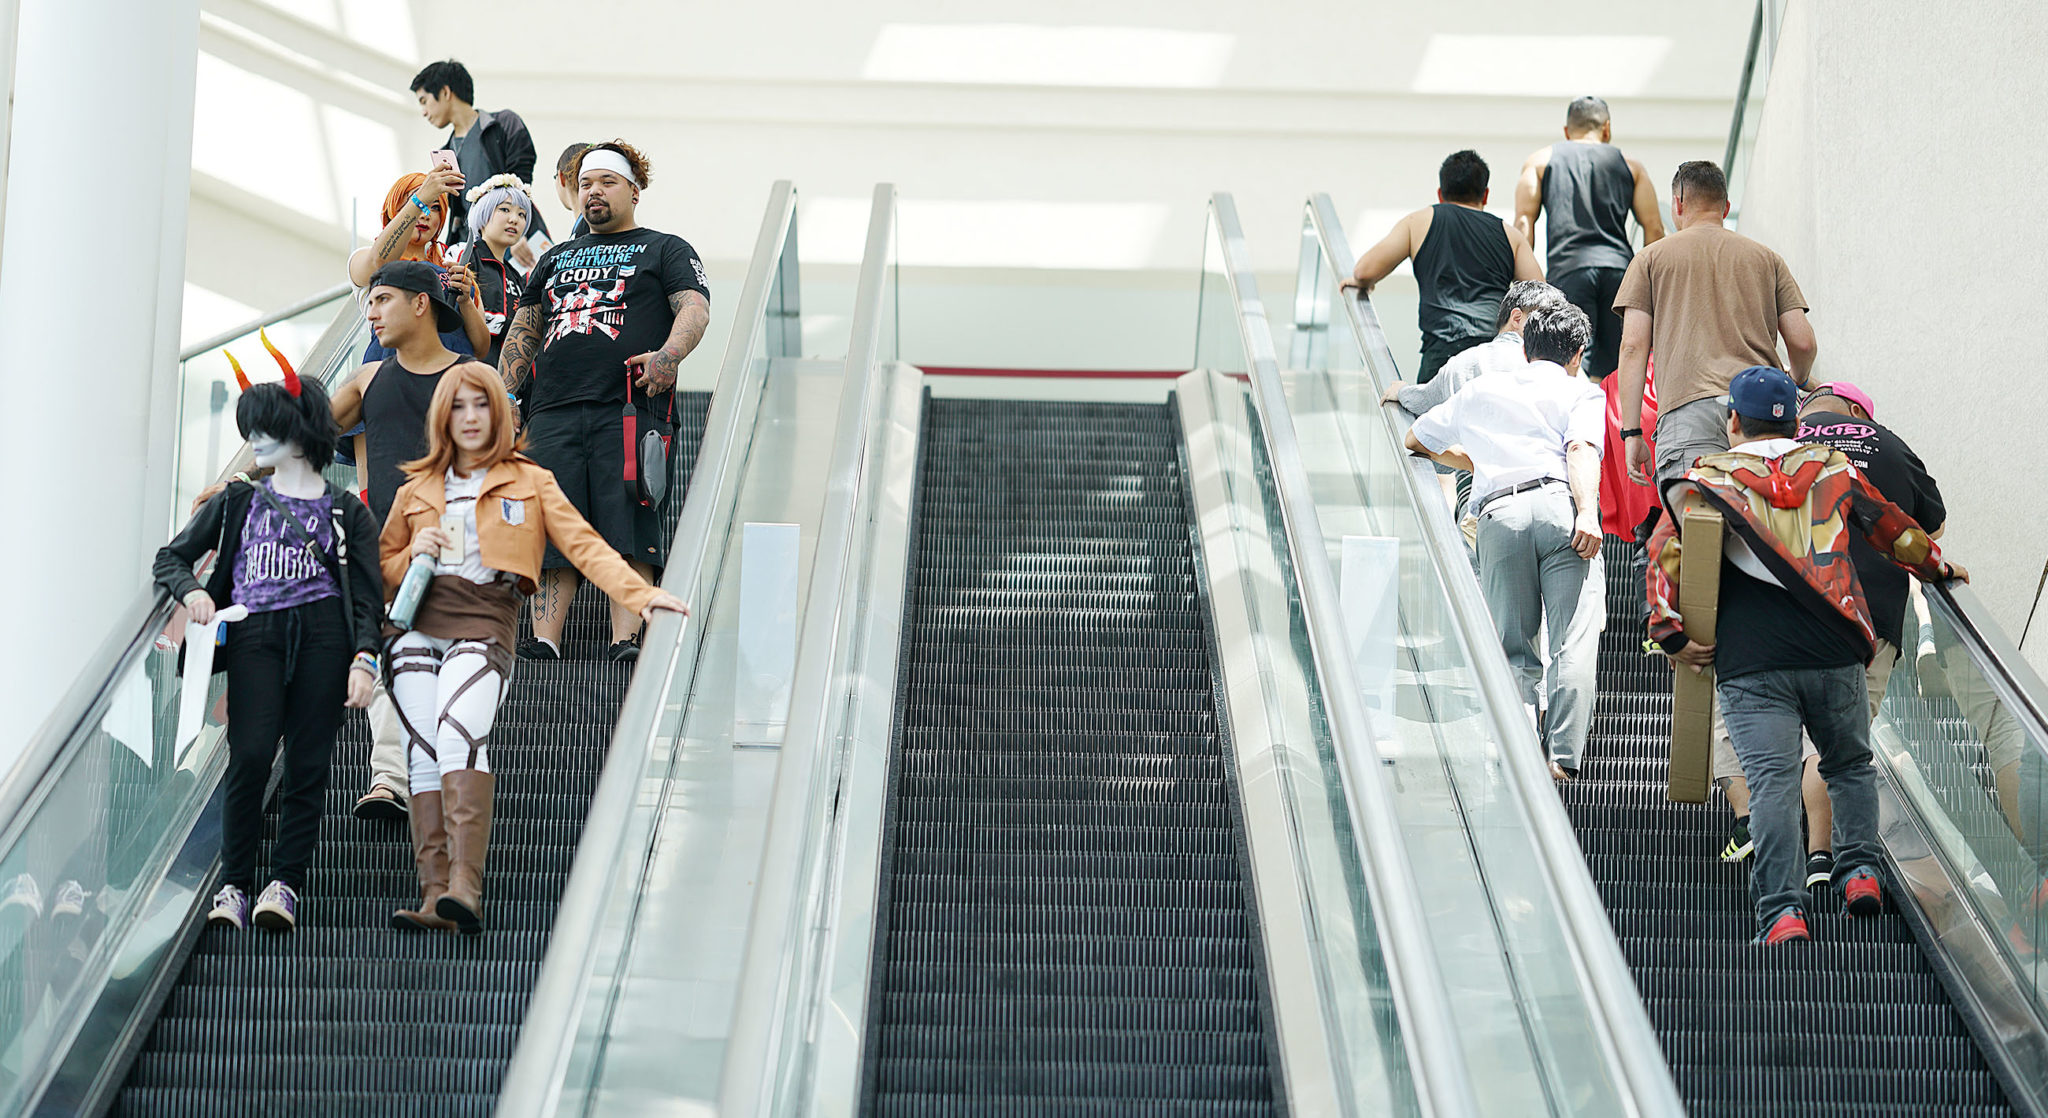 <p>Some convention attendees wore costumes themselves.</p>